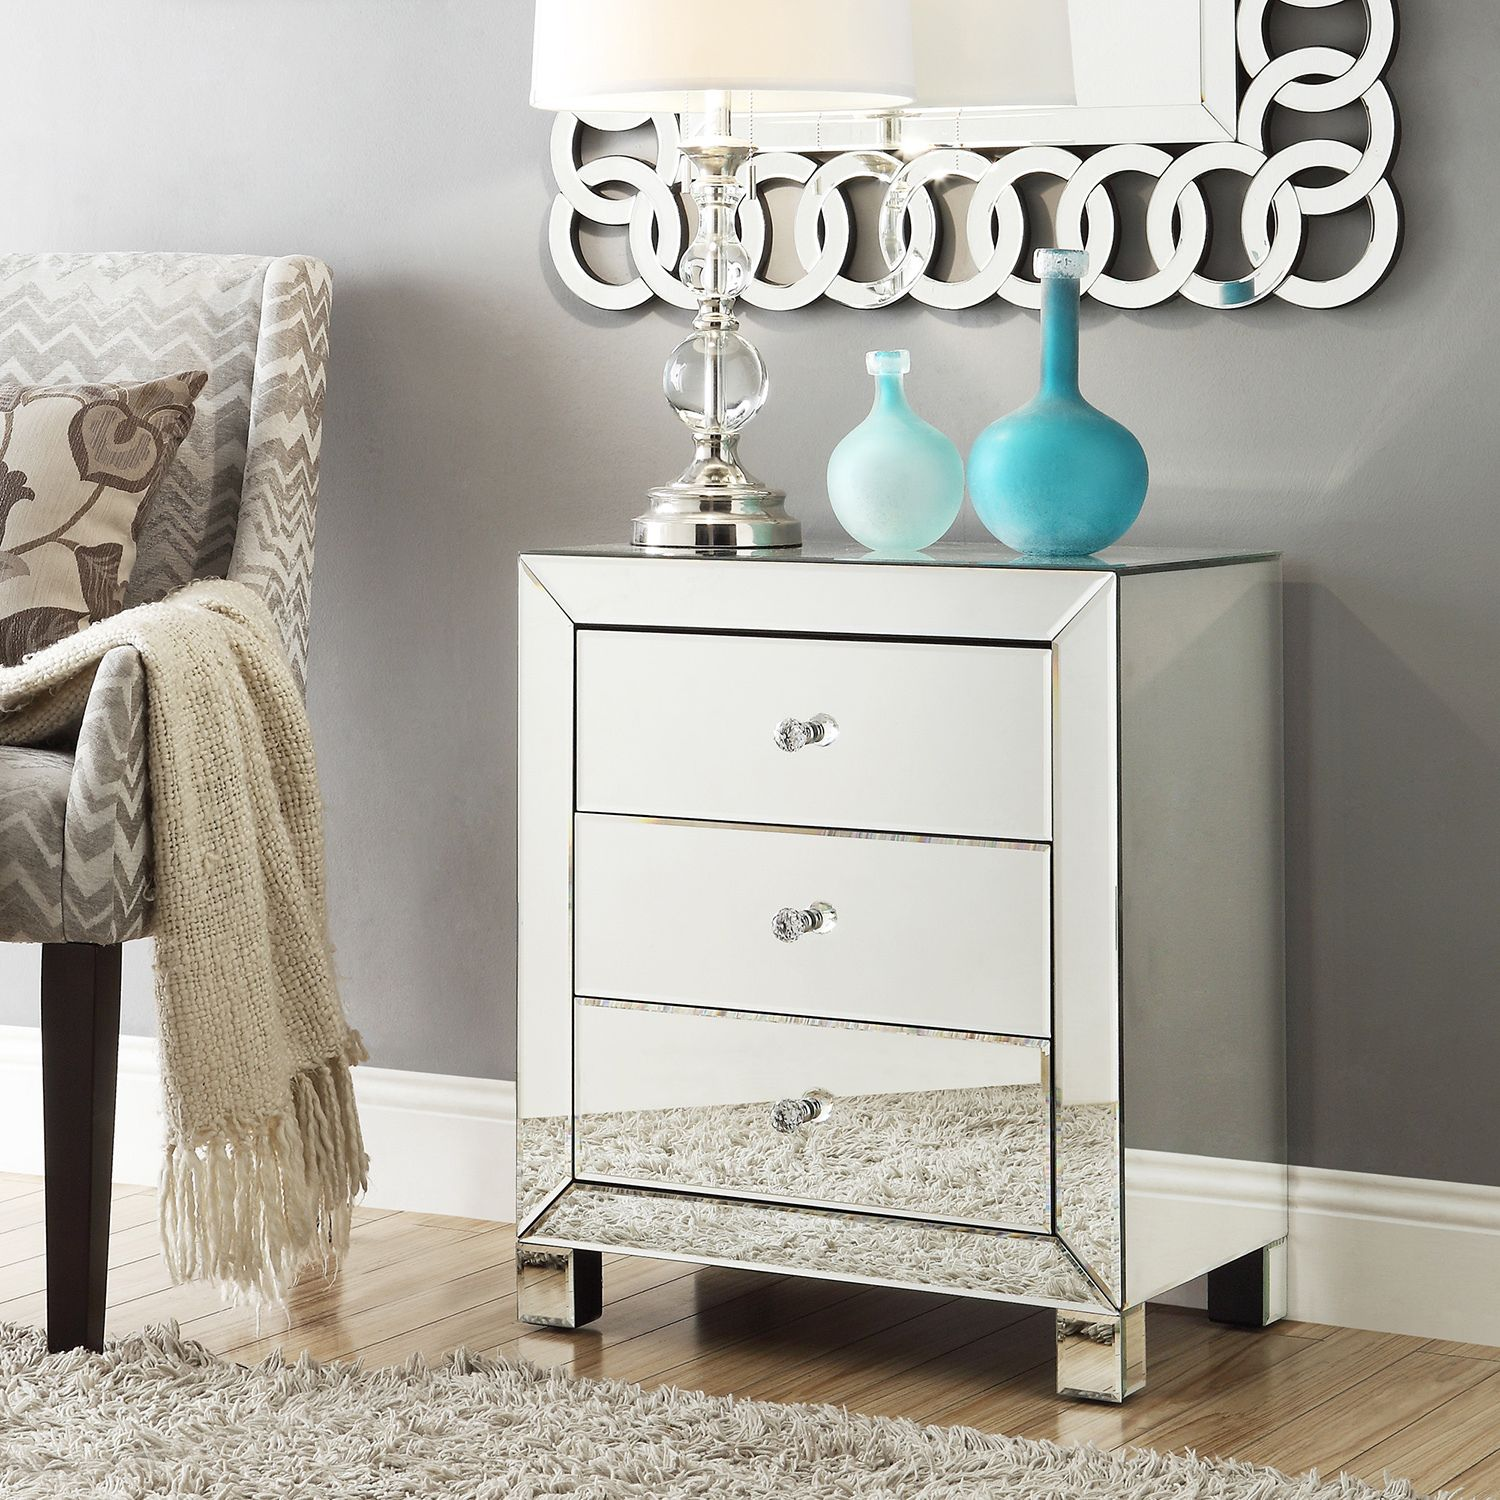 Esmond Mirrored 3-drawer Accent Table by iNSPIRE Q Bold by iNSPIRE Q